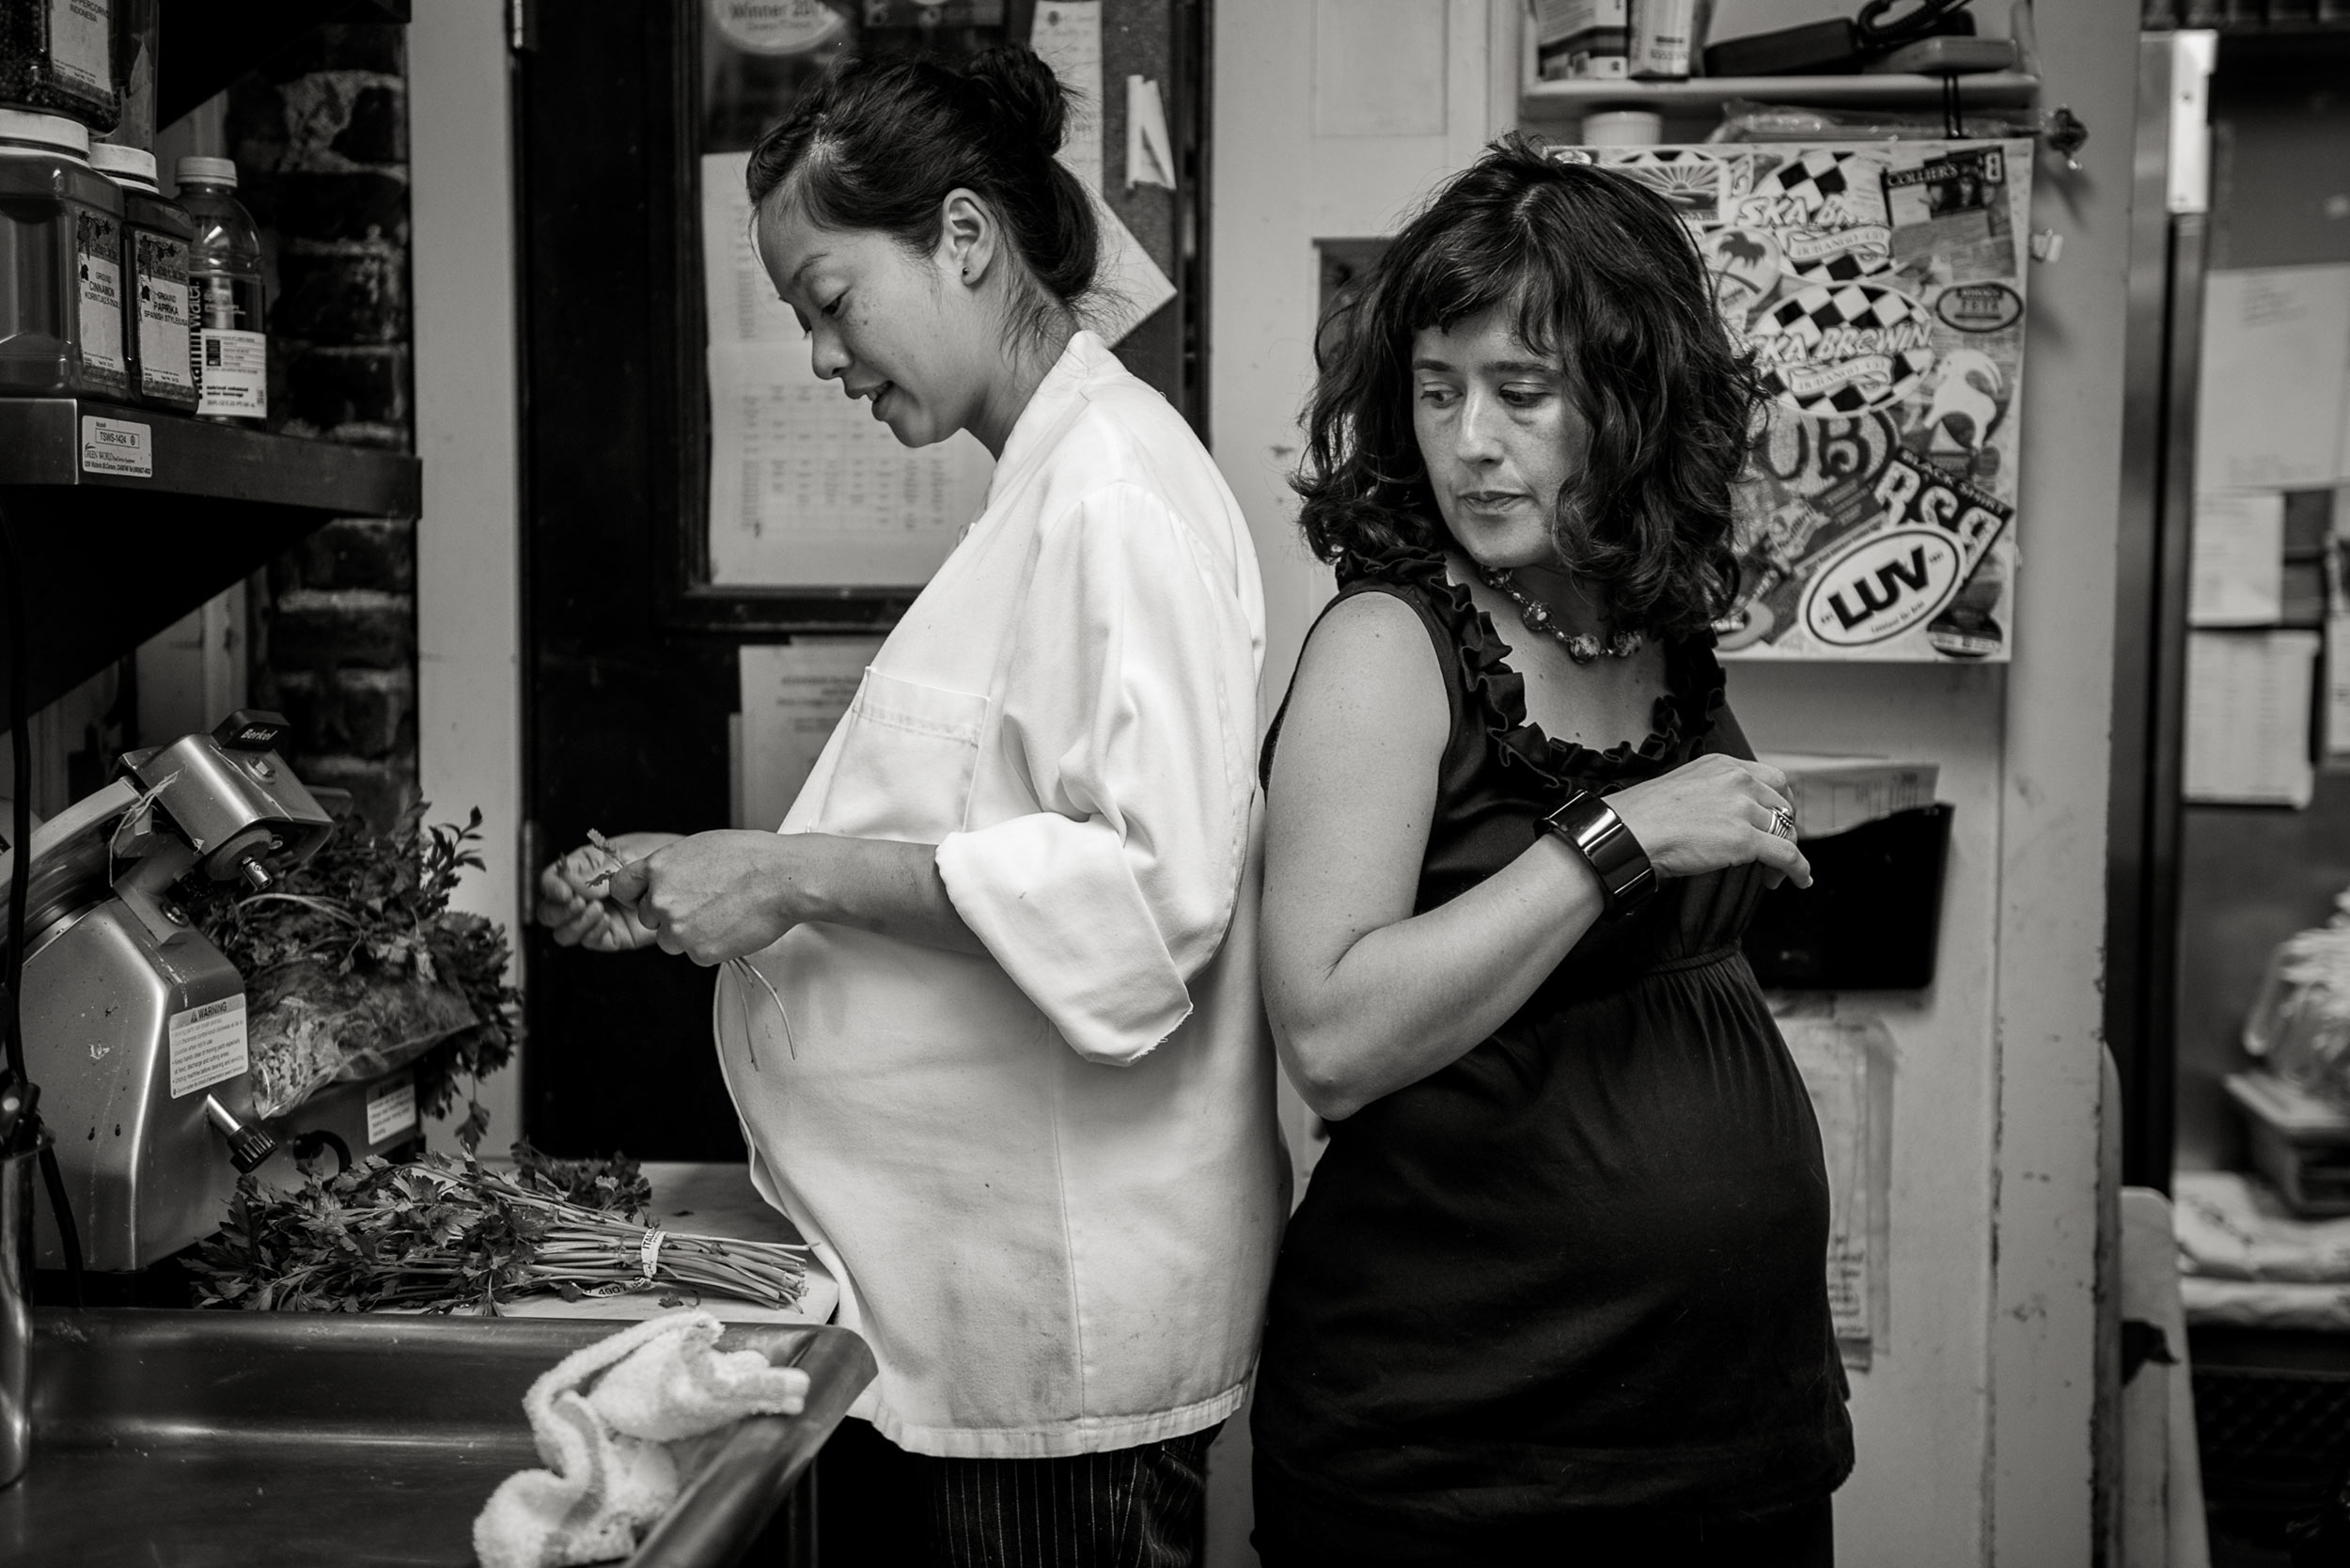 Tiffany, Cook, and Stephanie, Restaurant Owner - Carl Bower, 2012, © Carl Bower